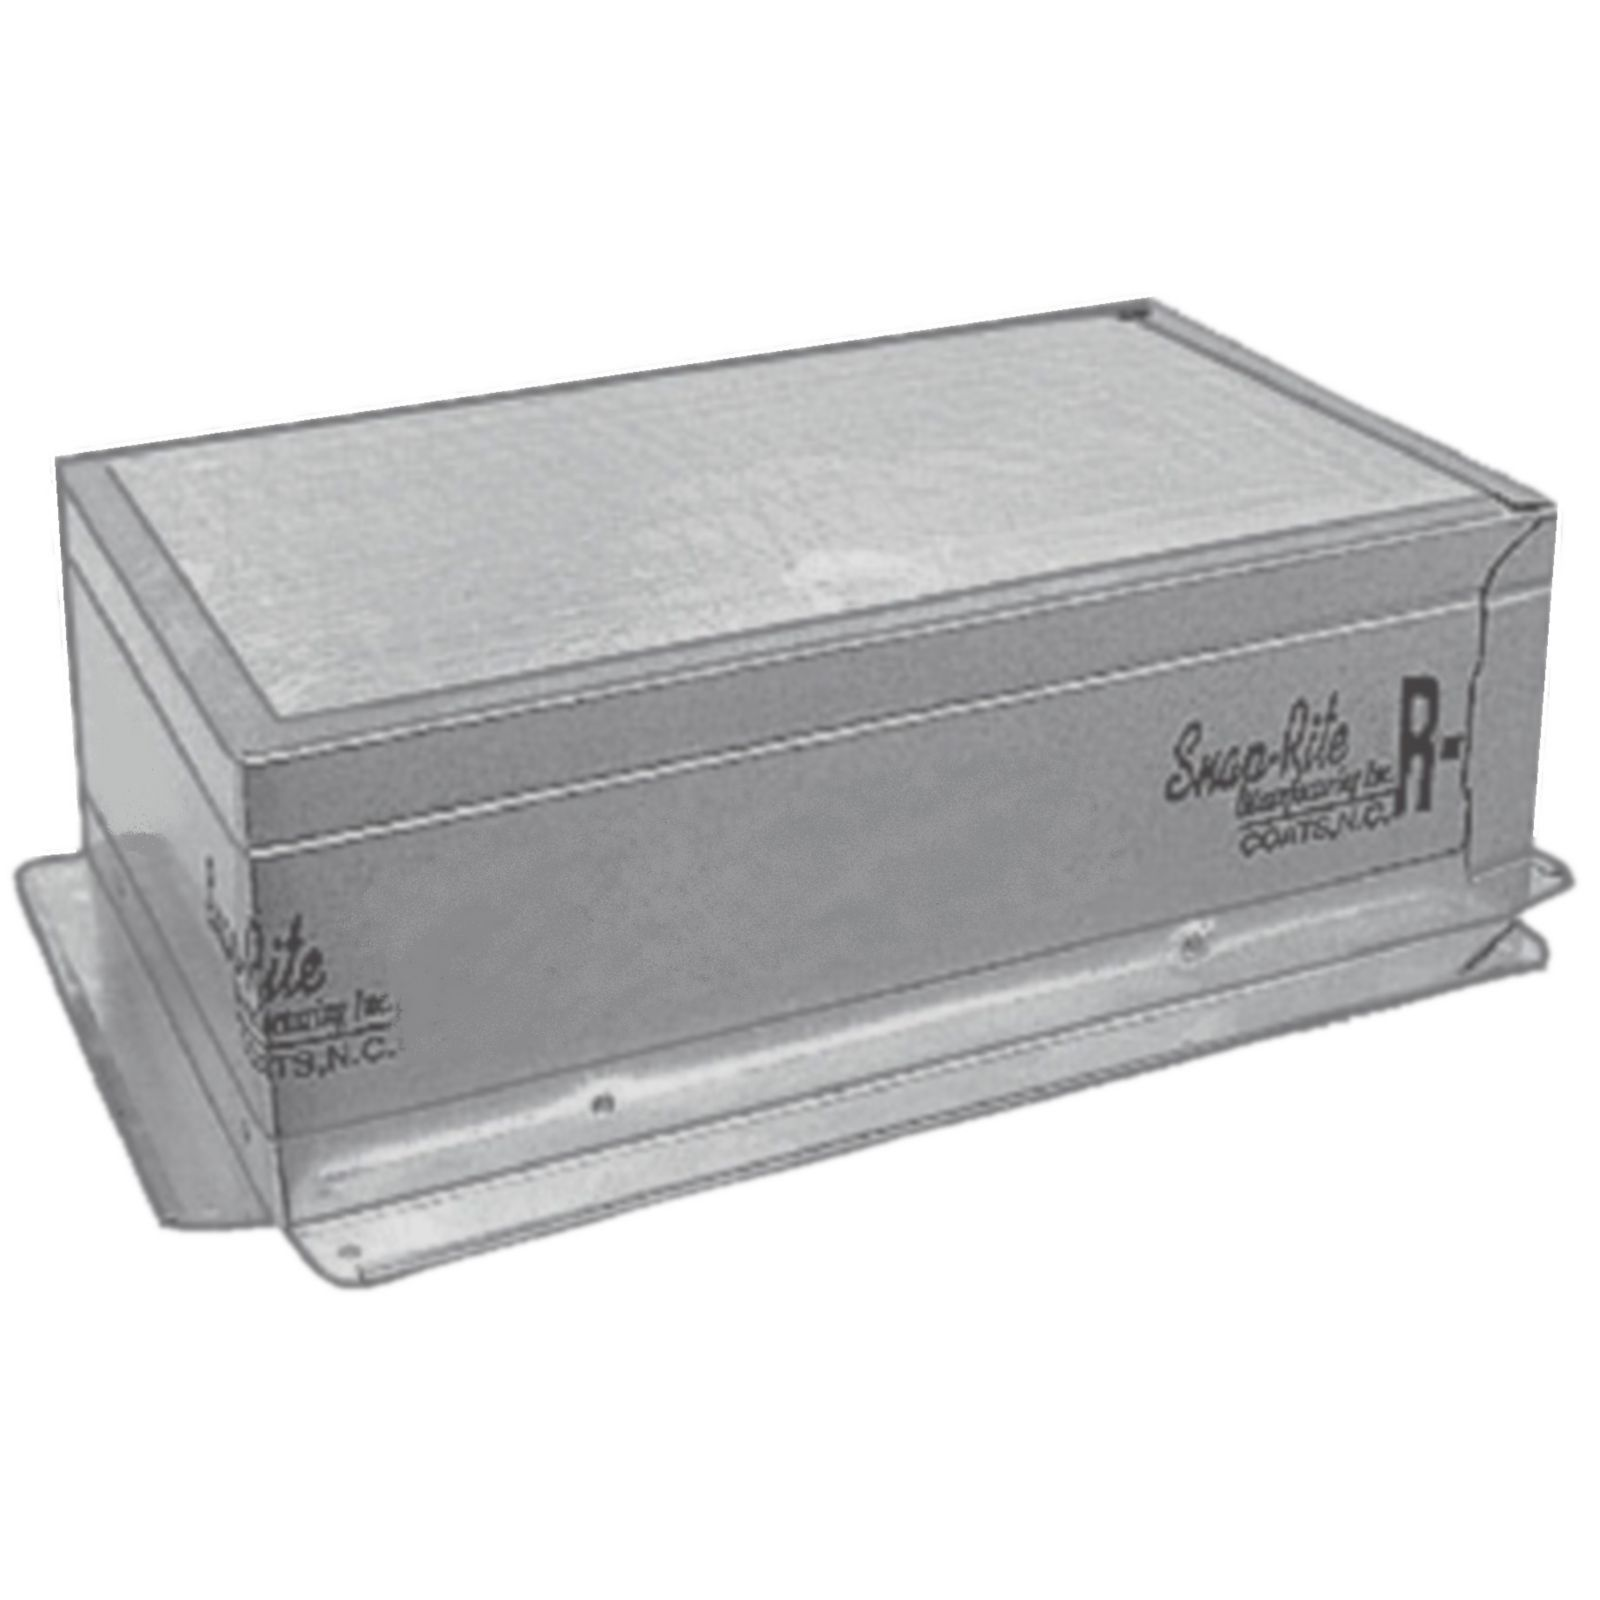 "Snap-Rite 08X04-3800F - Foil Top Insulated Register Box With Flange, 08"" x 04"" - R6"